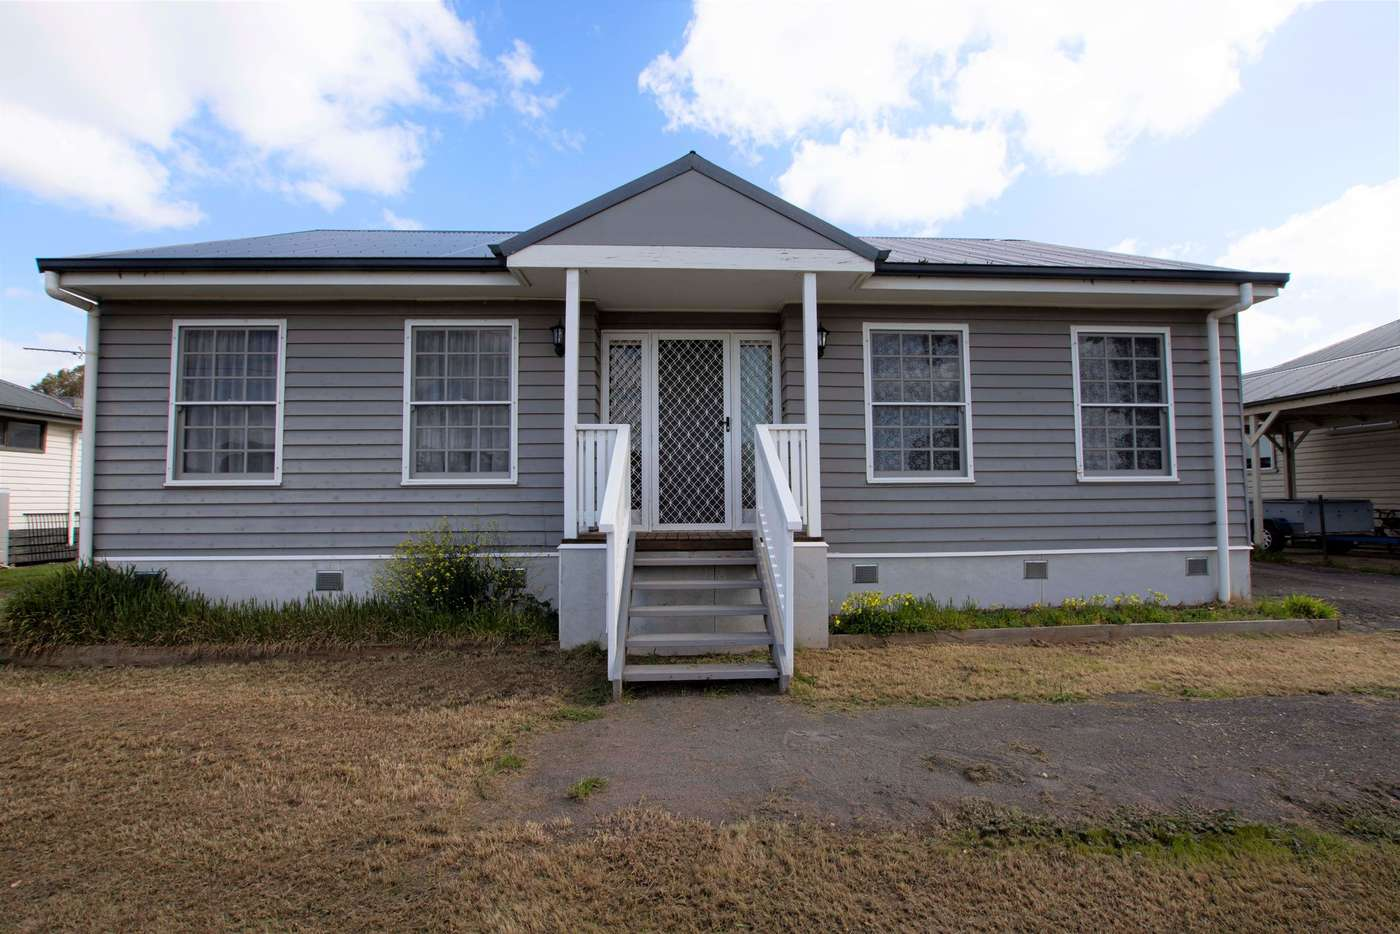 Main view of Homely ruralOther listing, 21 Thomas Street, Dunolly VIC 3472